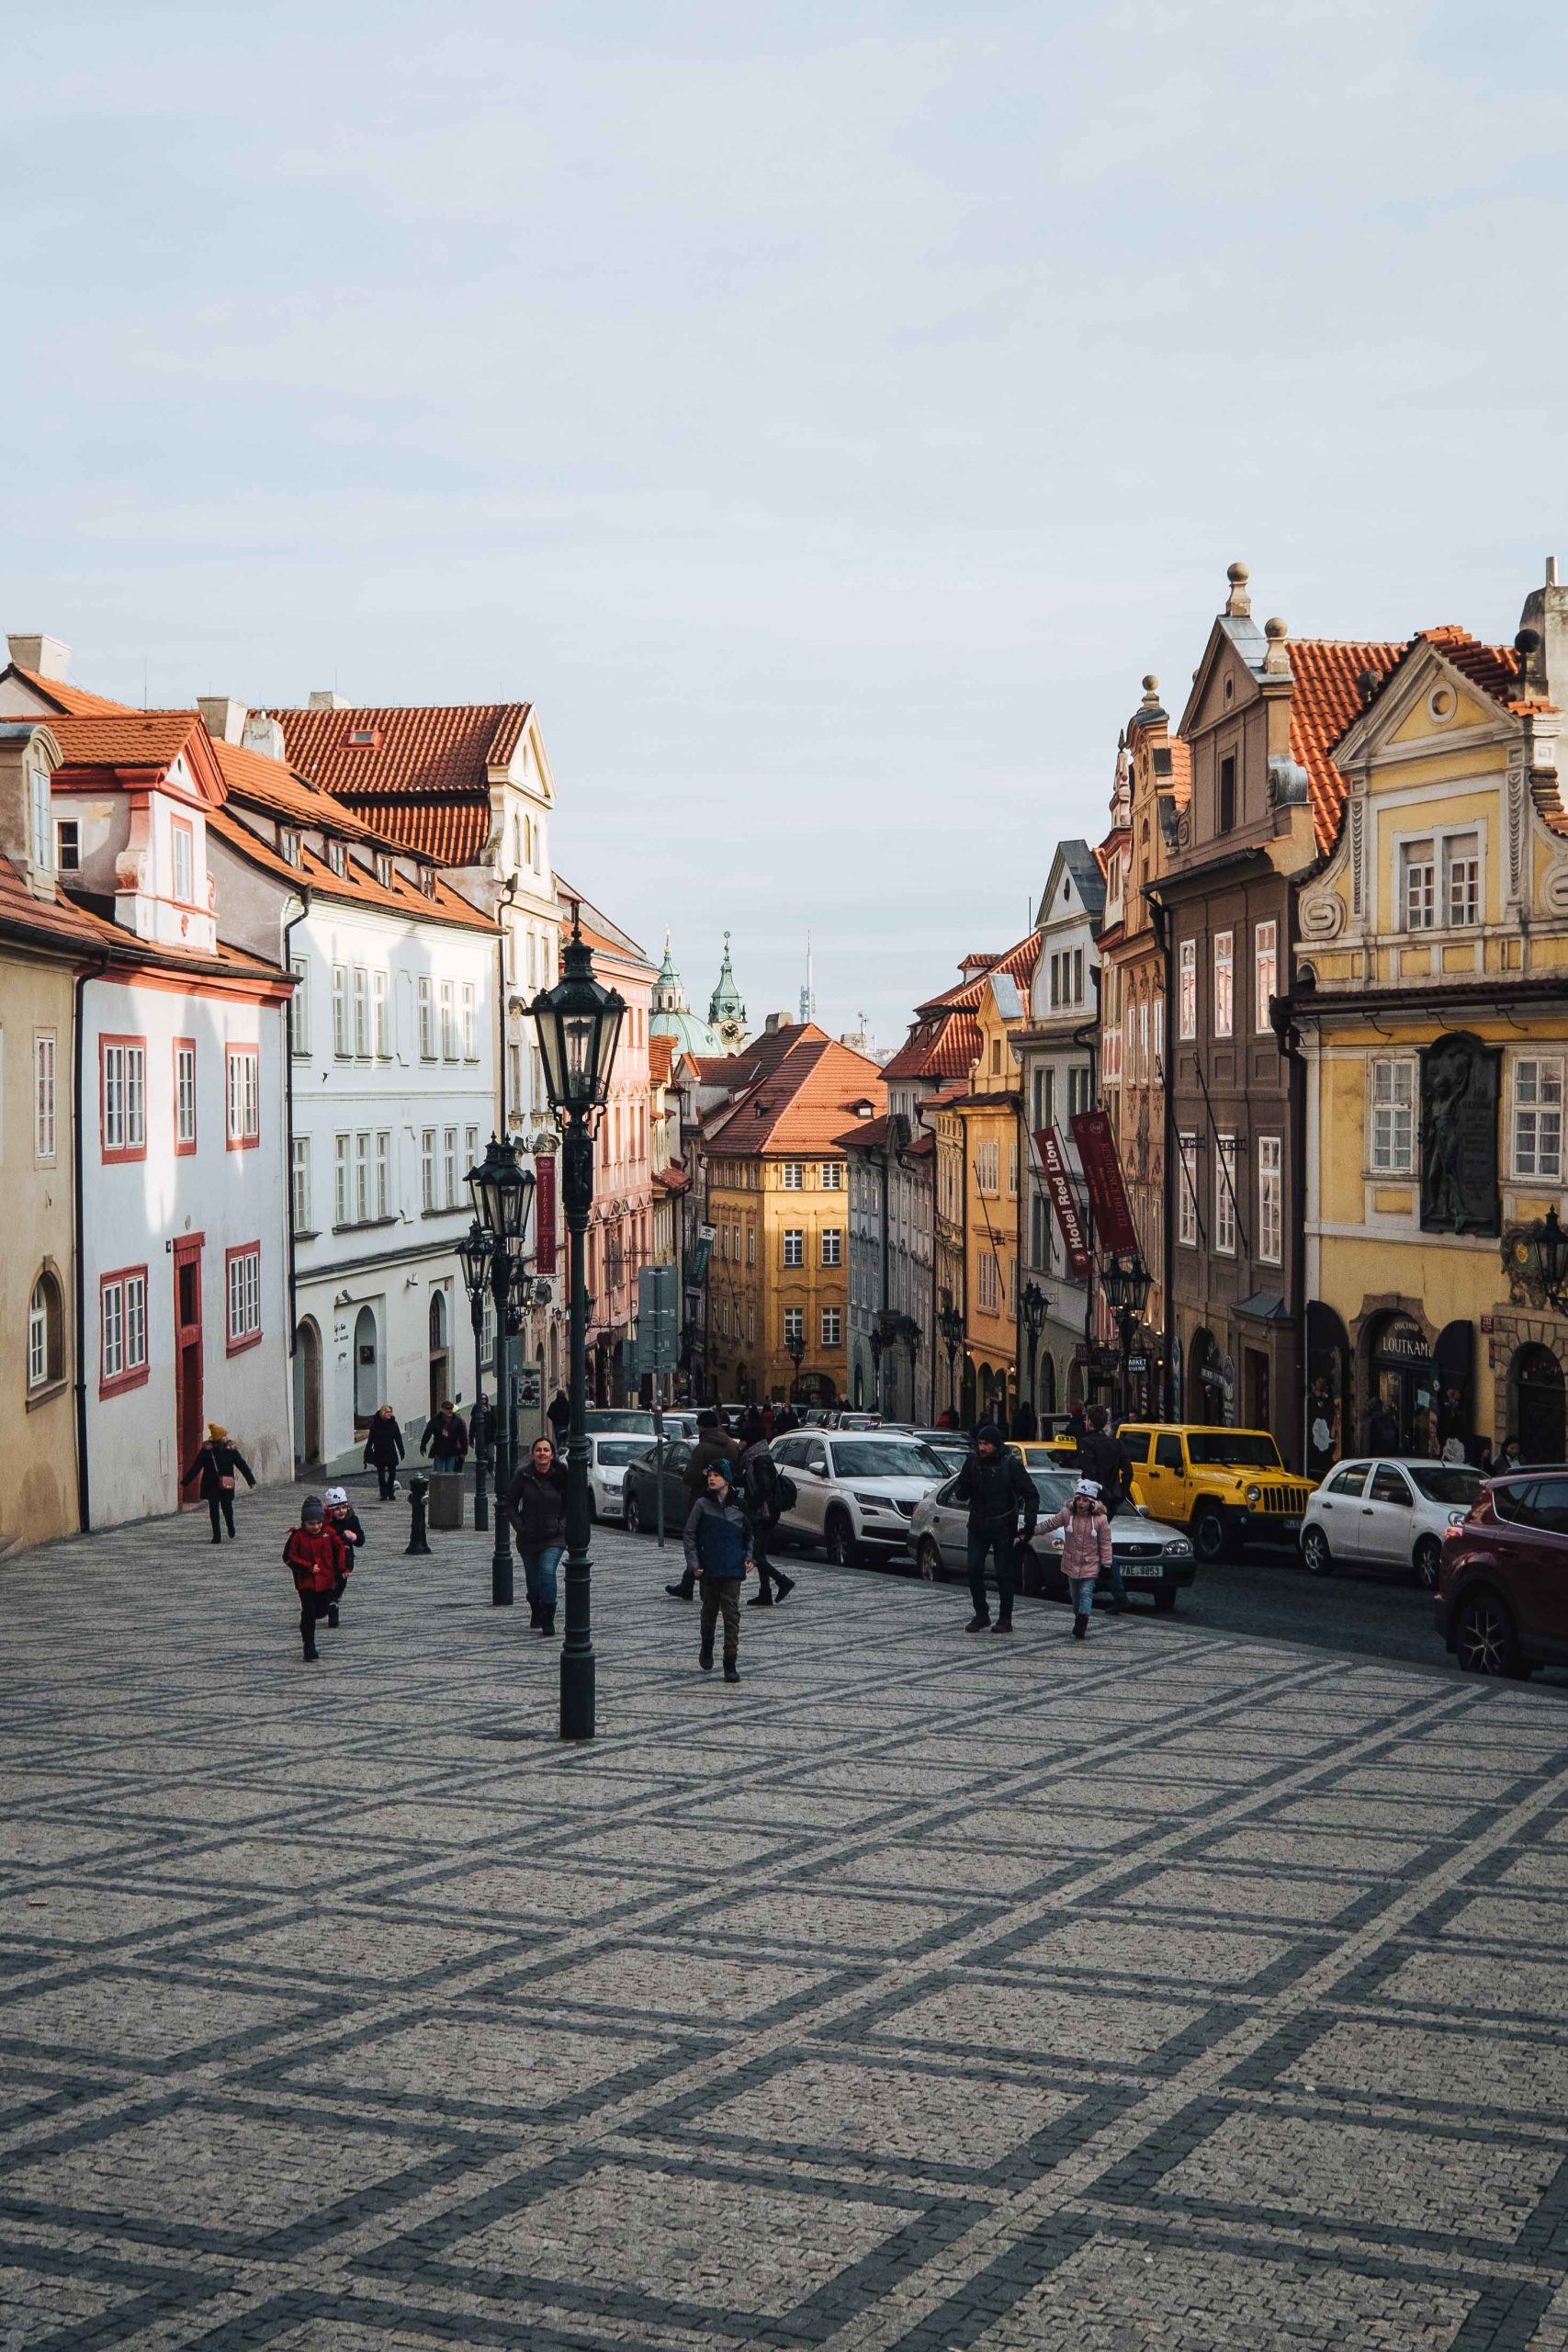 Malá Strana (the Lesser Town) is a hillside neighbourhood of Prague with views across the Vltava river to the old town | Mondomulia